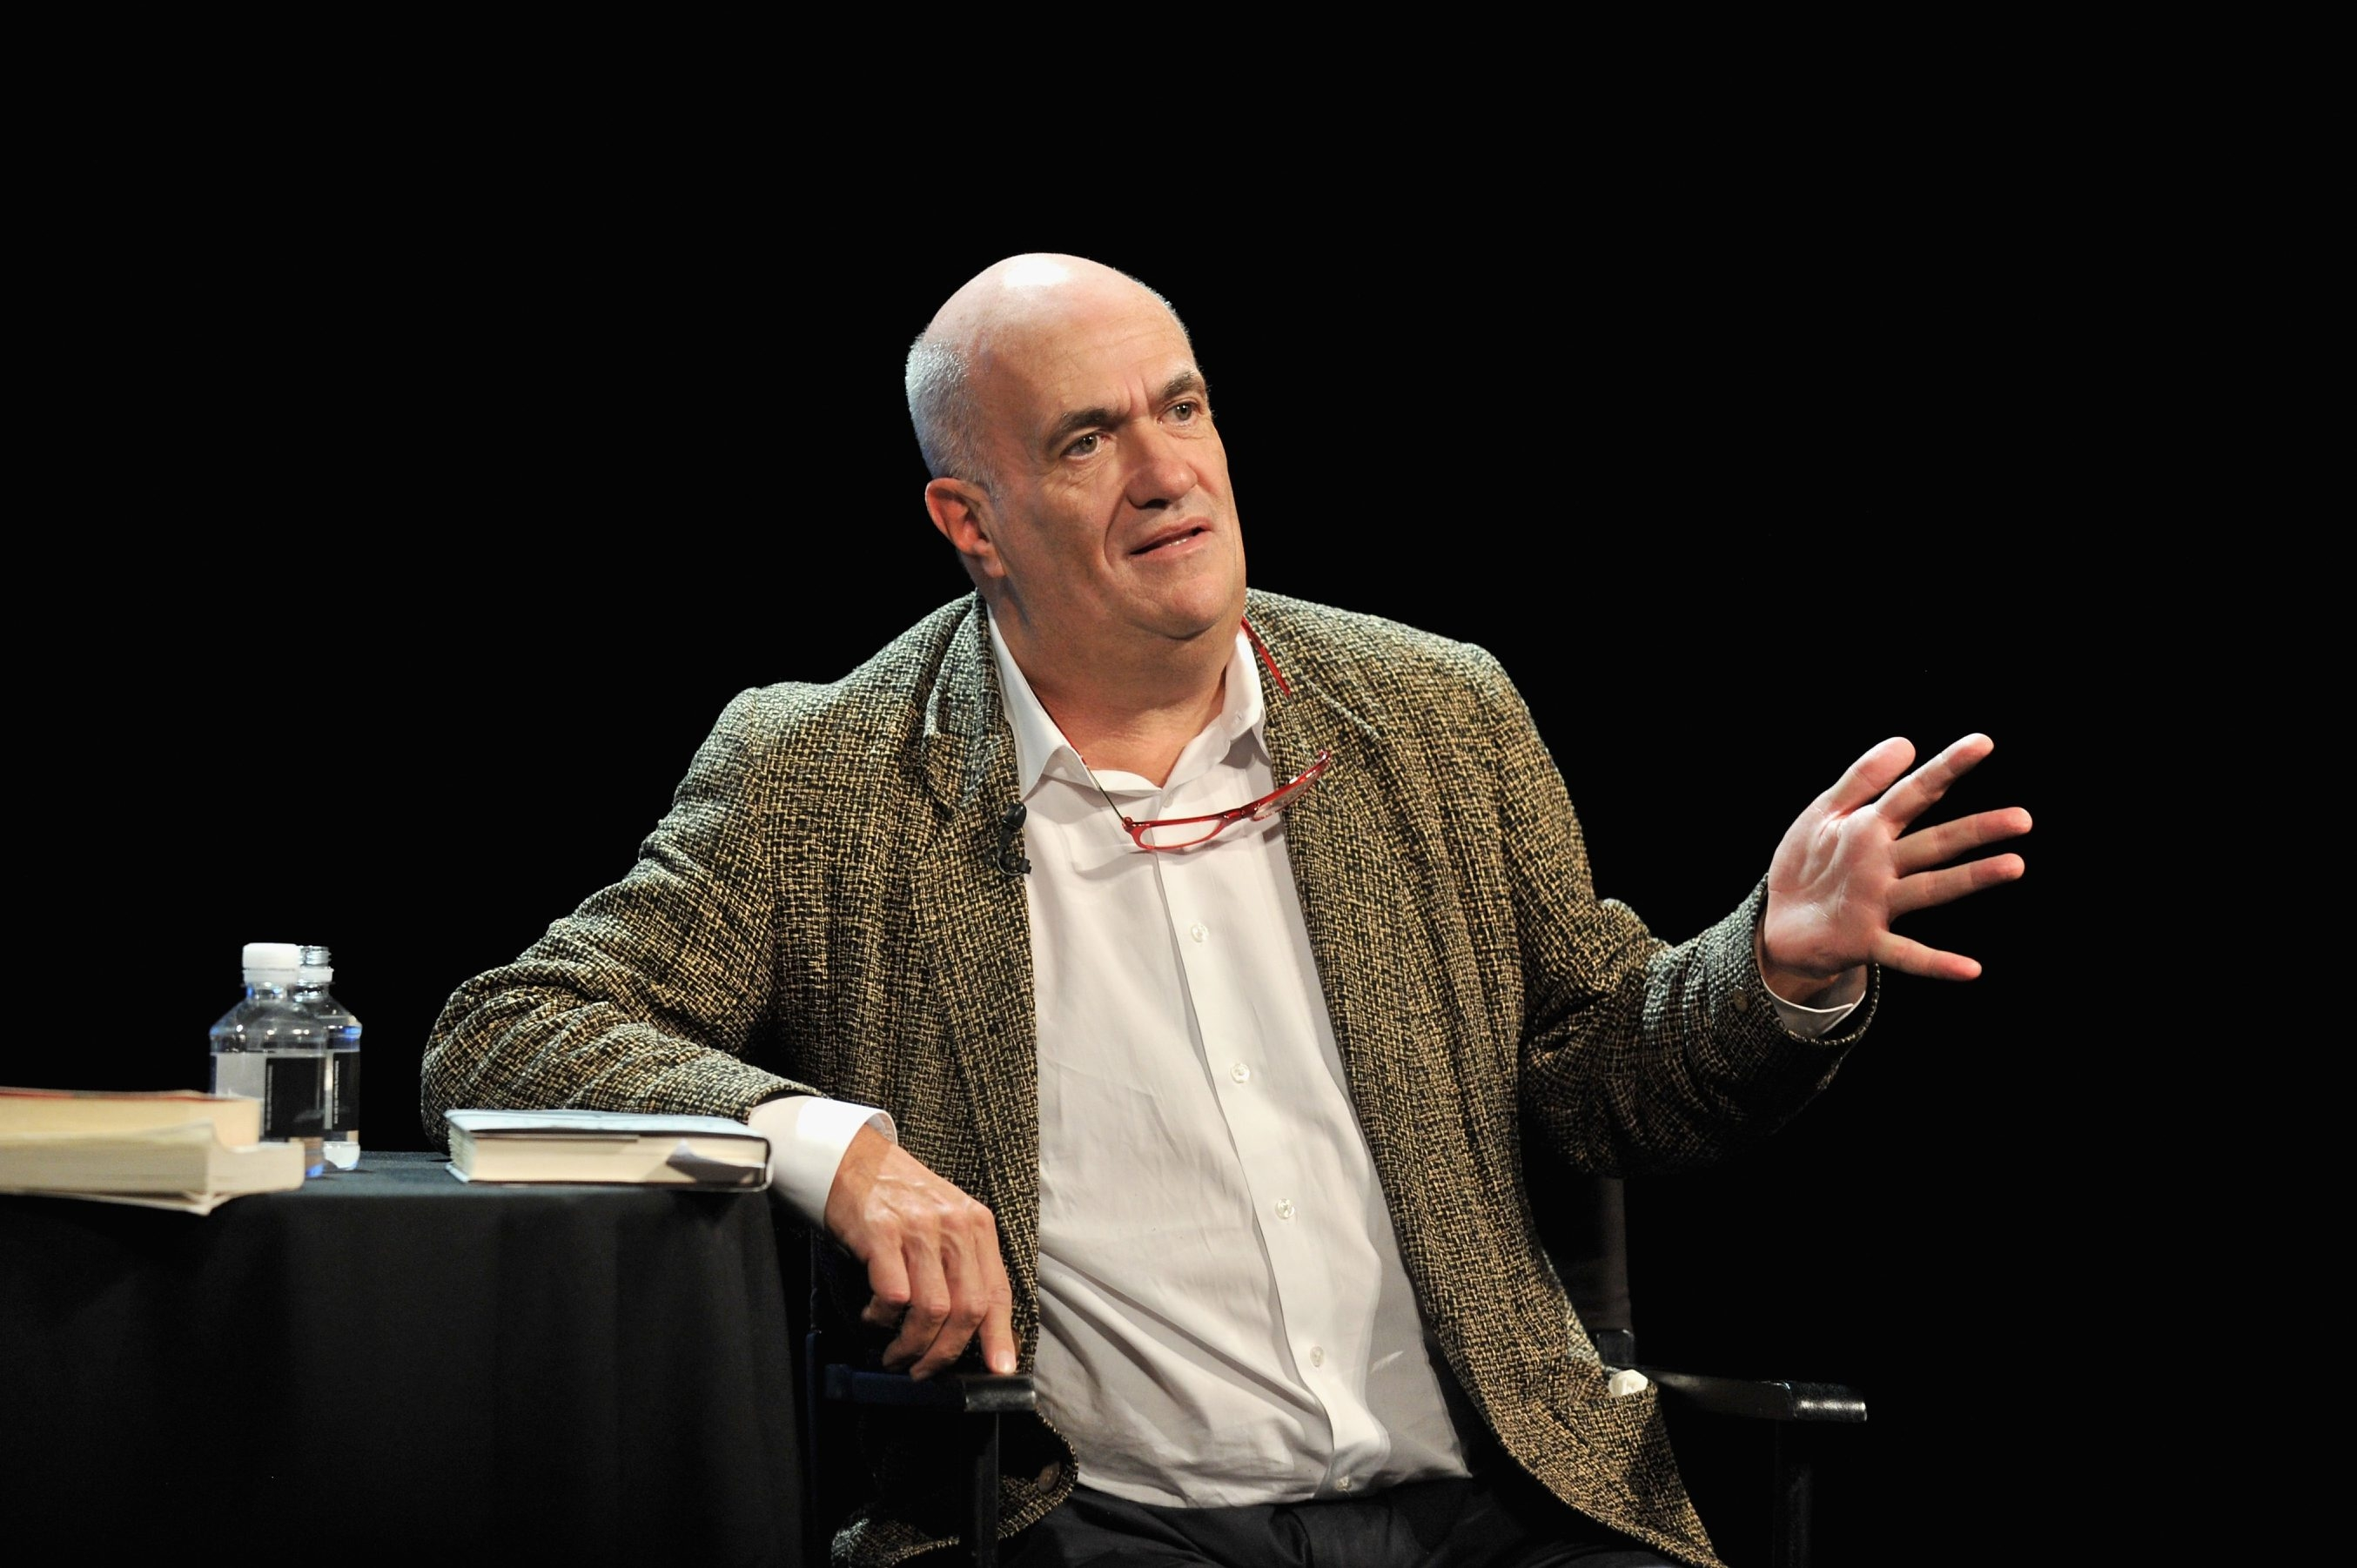 Colm Tóibín explores the turbulence that courses below the surface of life.